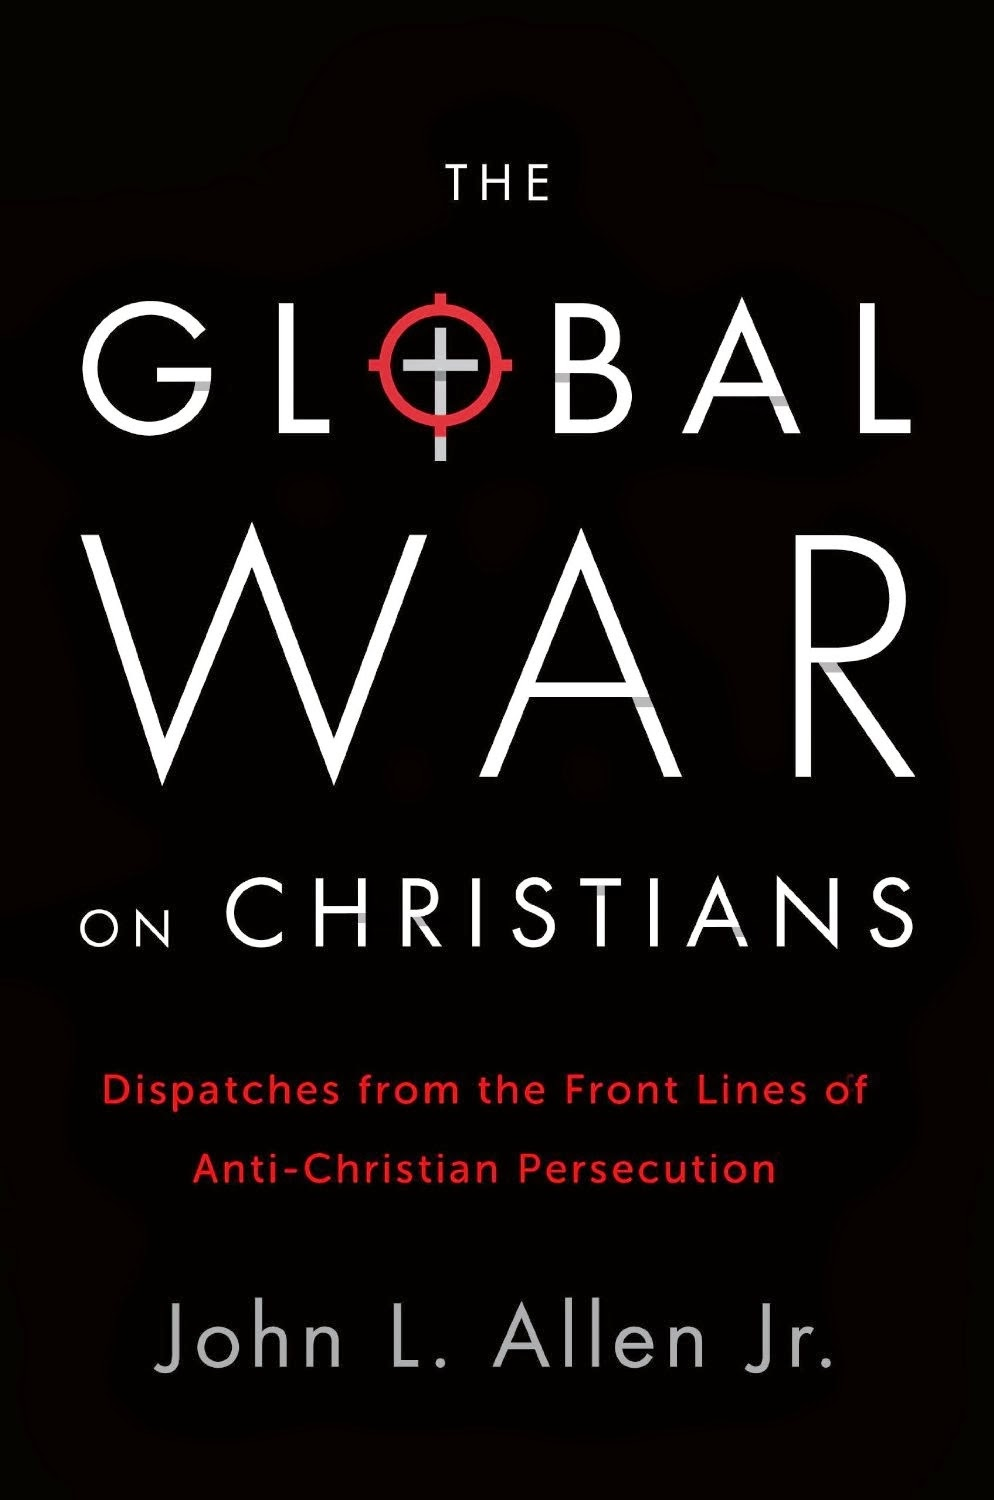 The Global War on Christians Dispatches from the Front Lines of Anti-Christian Persecution ebook download